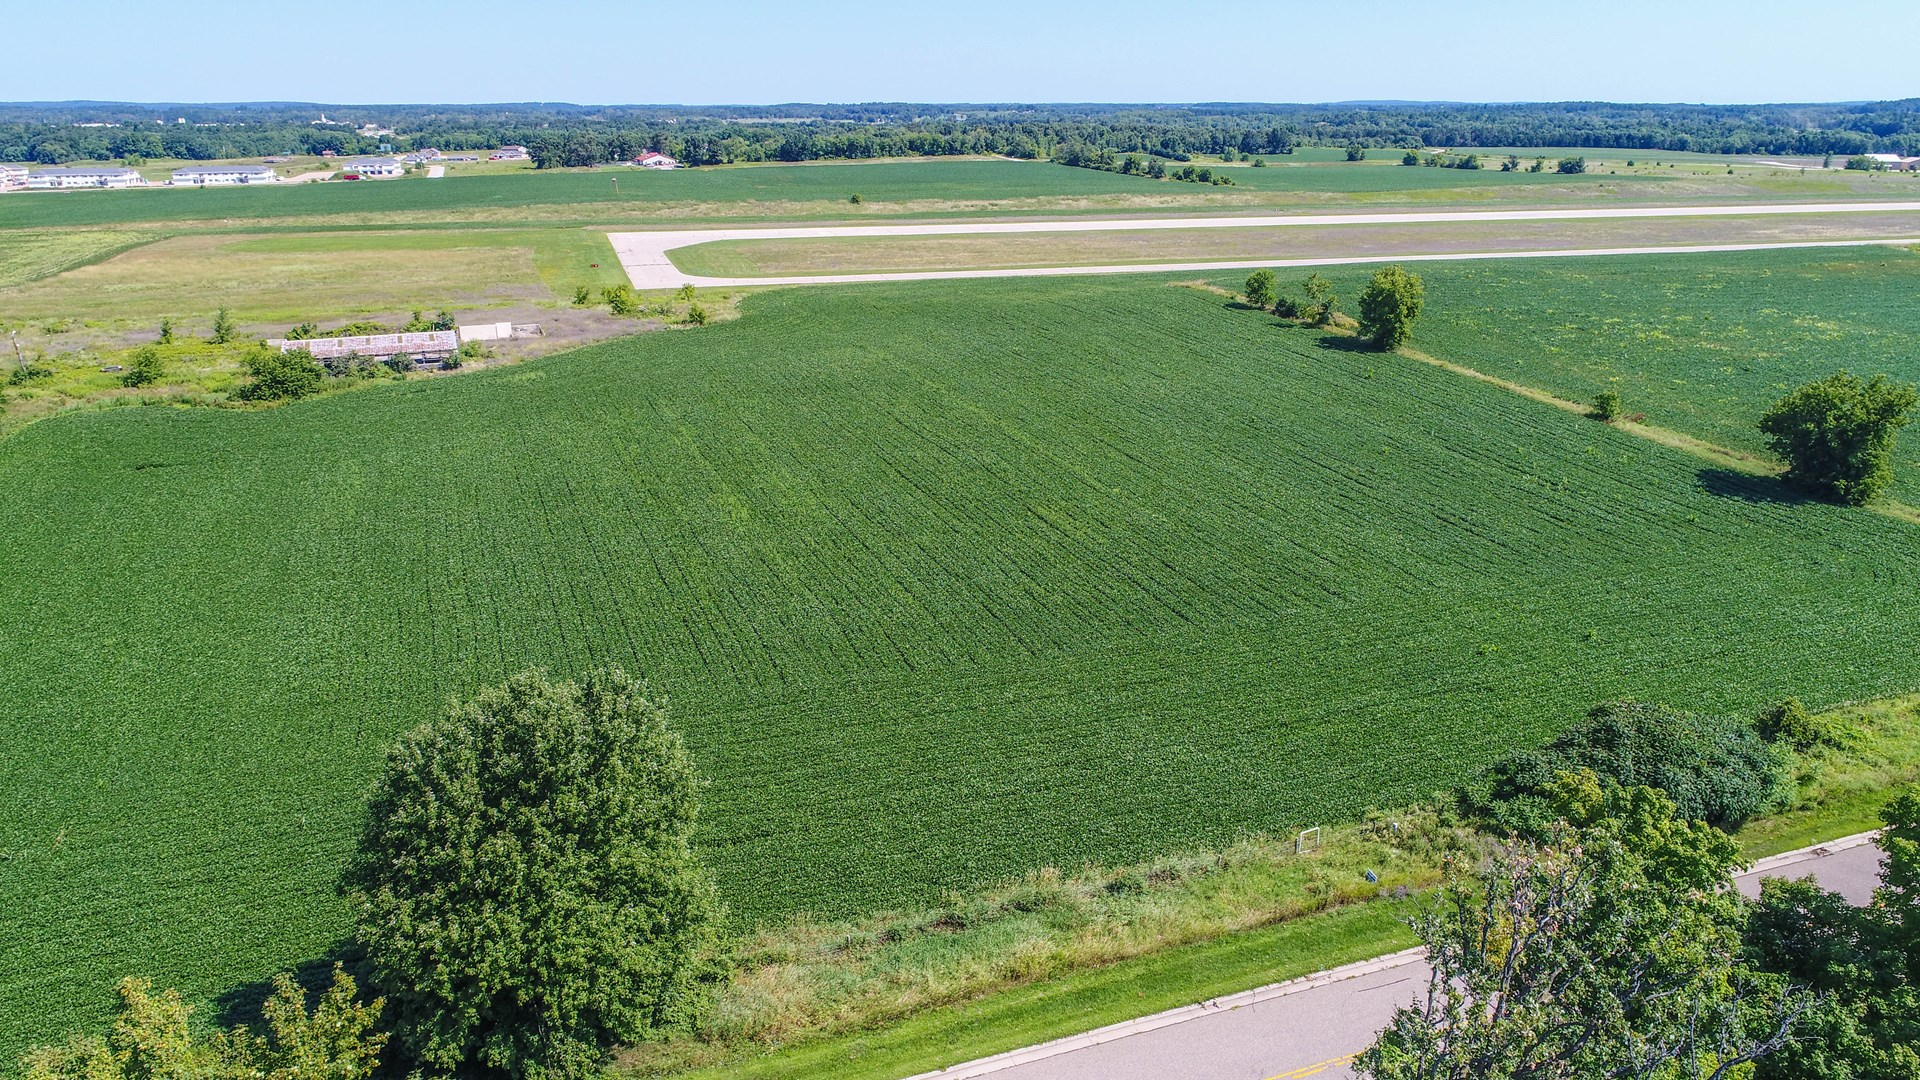 Acreage for Sale with Visibility from US Hwy 10 Waupaca WI